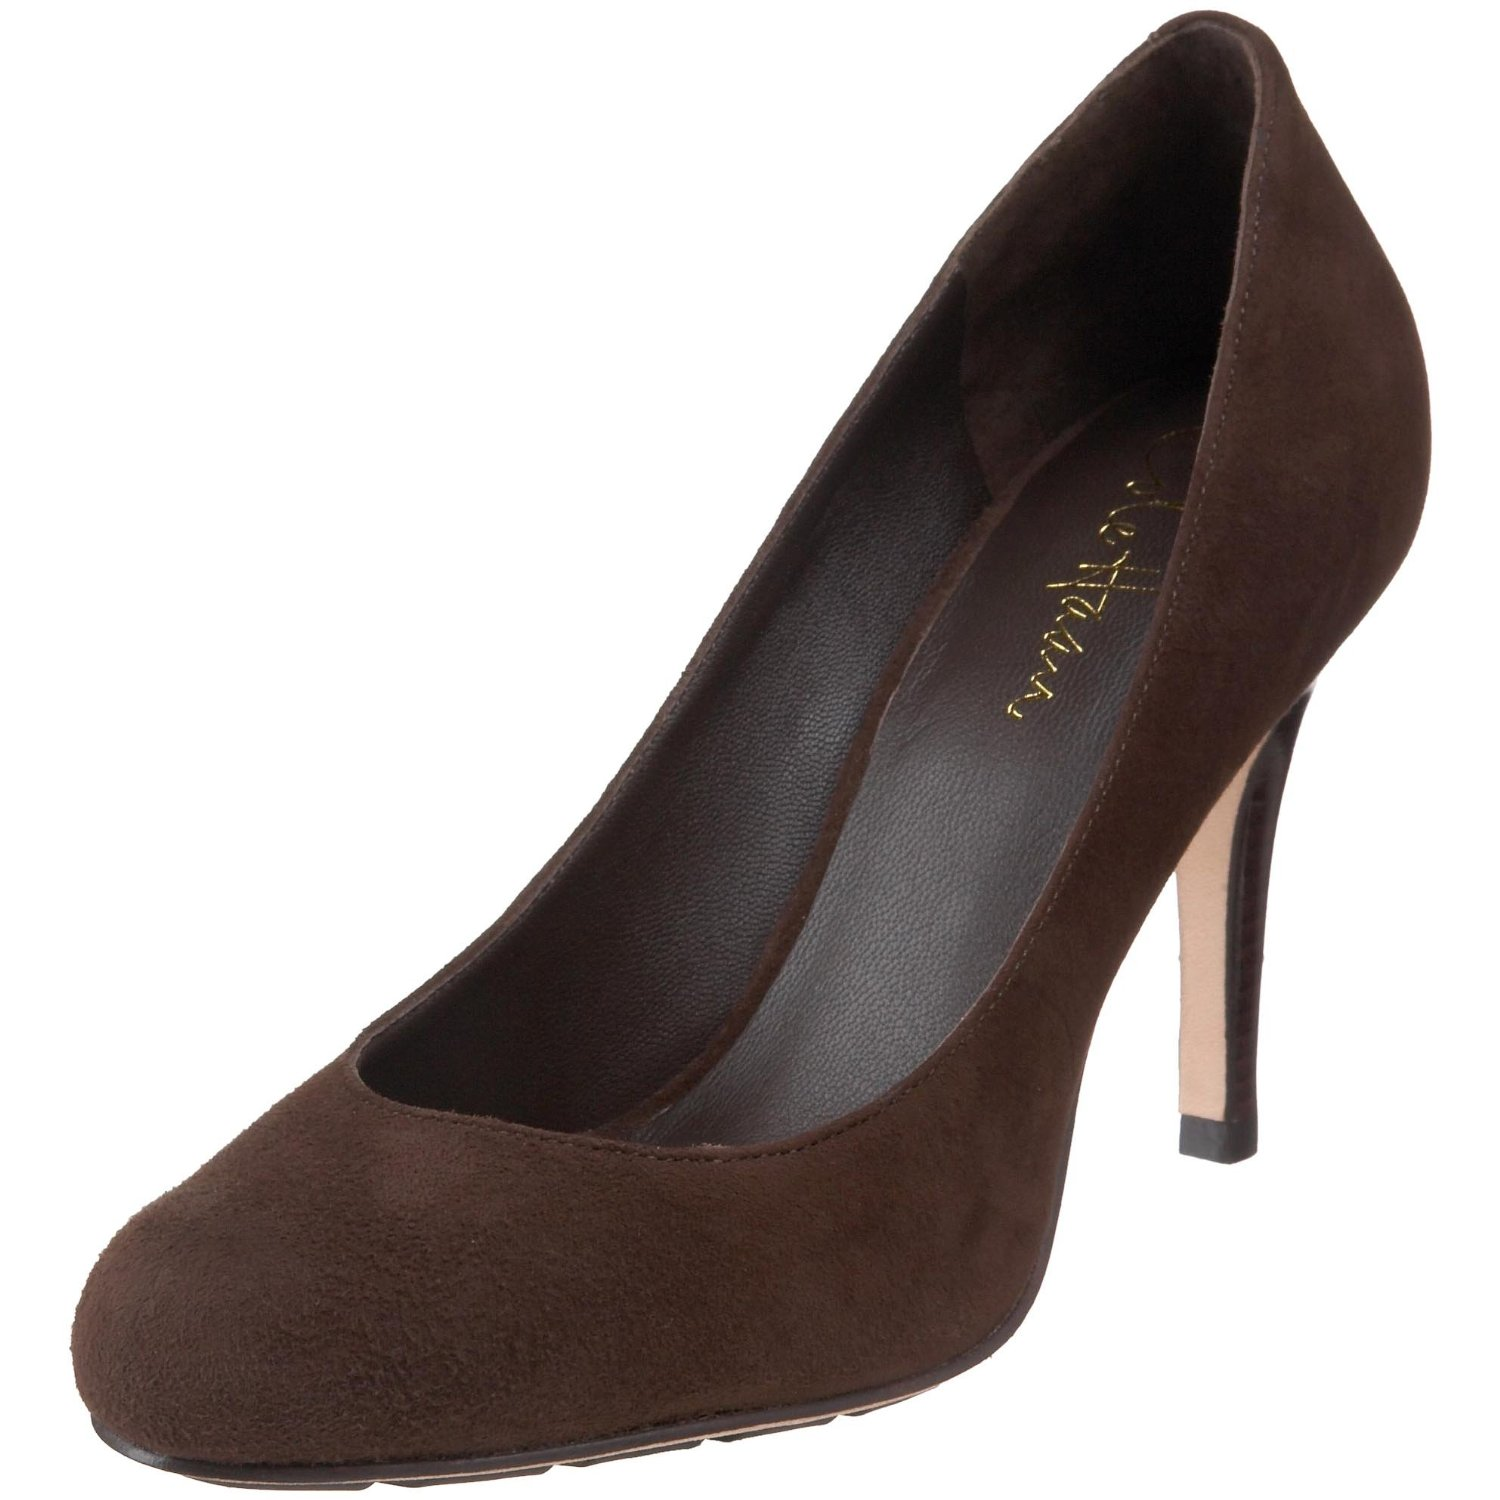 cole haan cole haan womens air talia pump in brown dark chocolate suede lyst. Black Bedroom Furniture Sets. Home Design Ideas